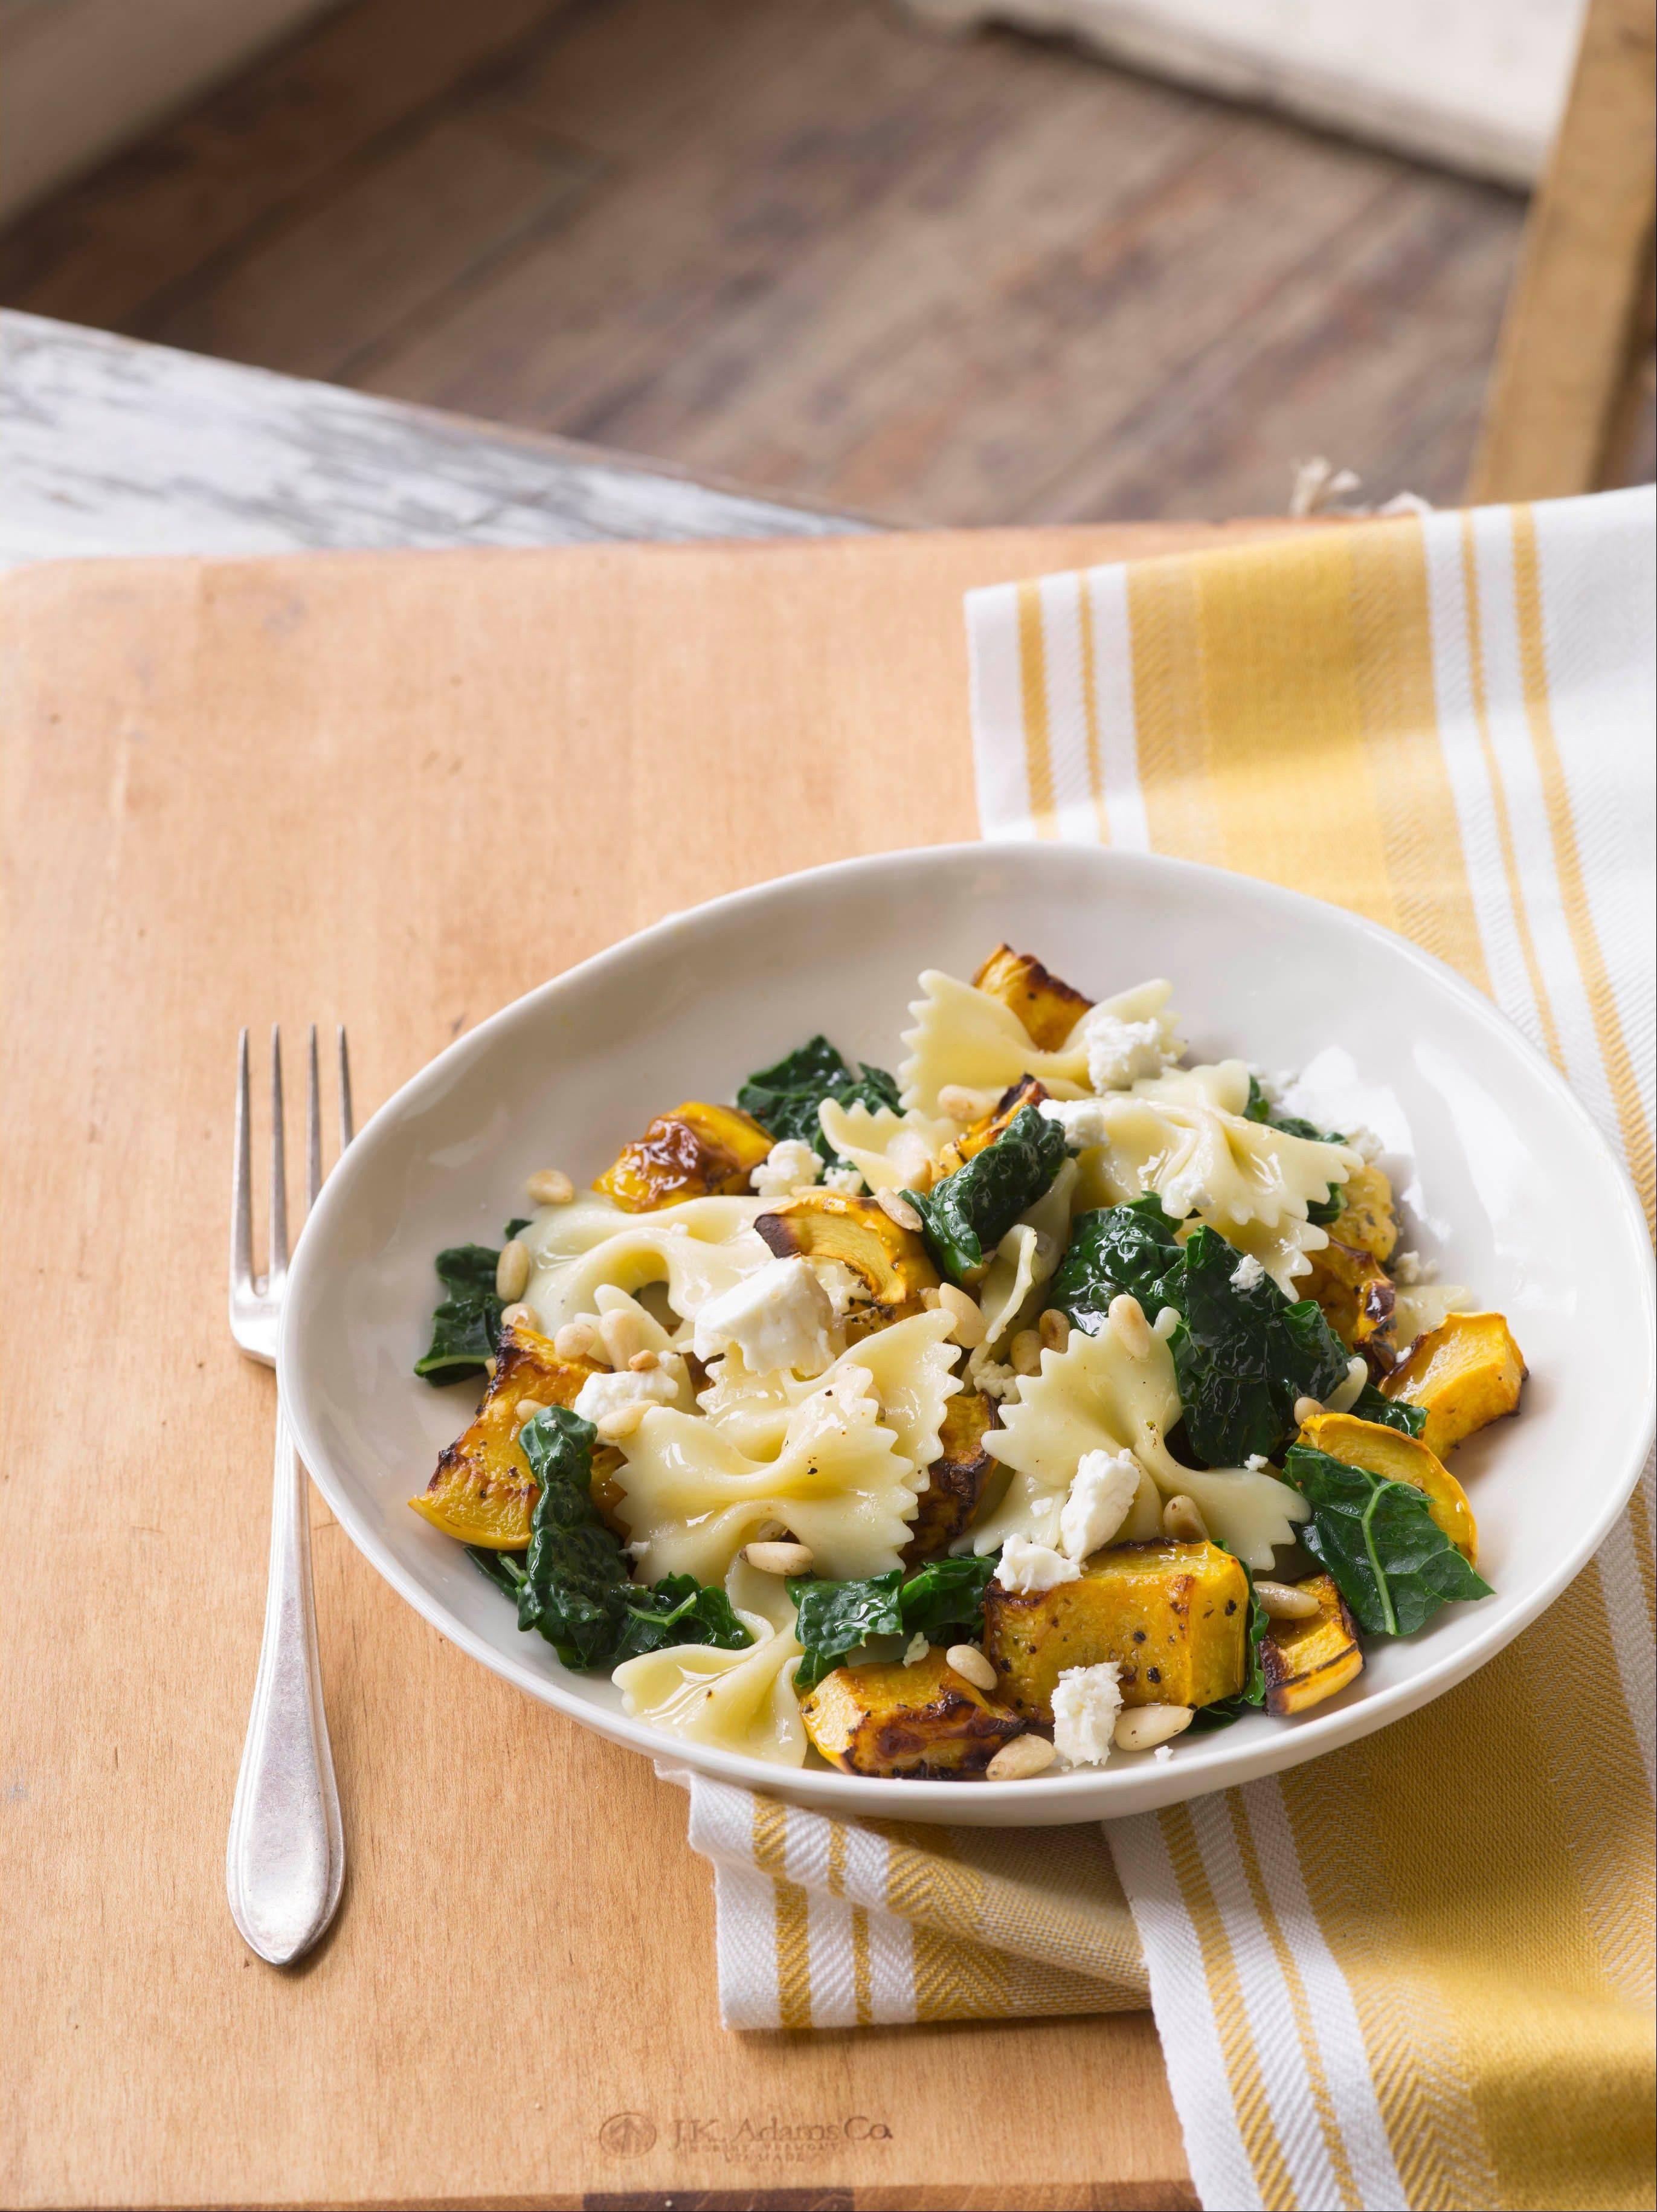 Roasted Delicata Squash and Tuscan Kale is sweetened with honey.